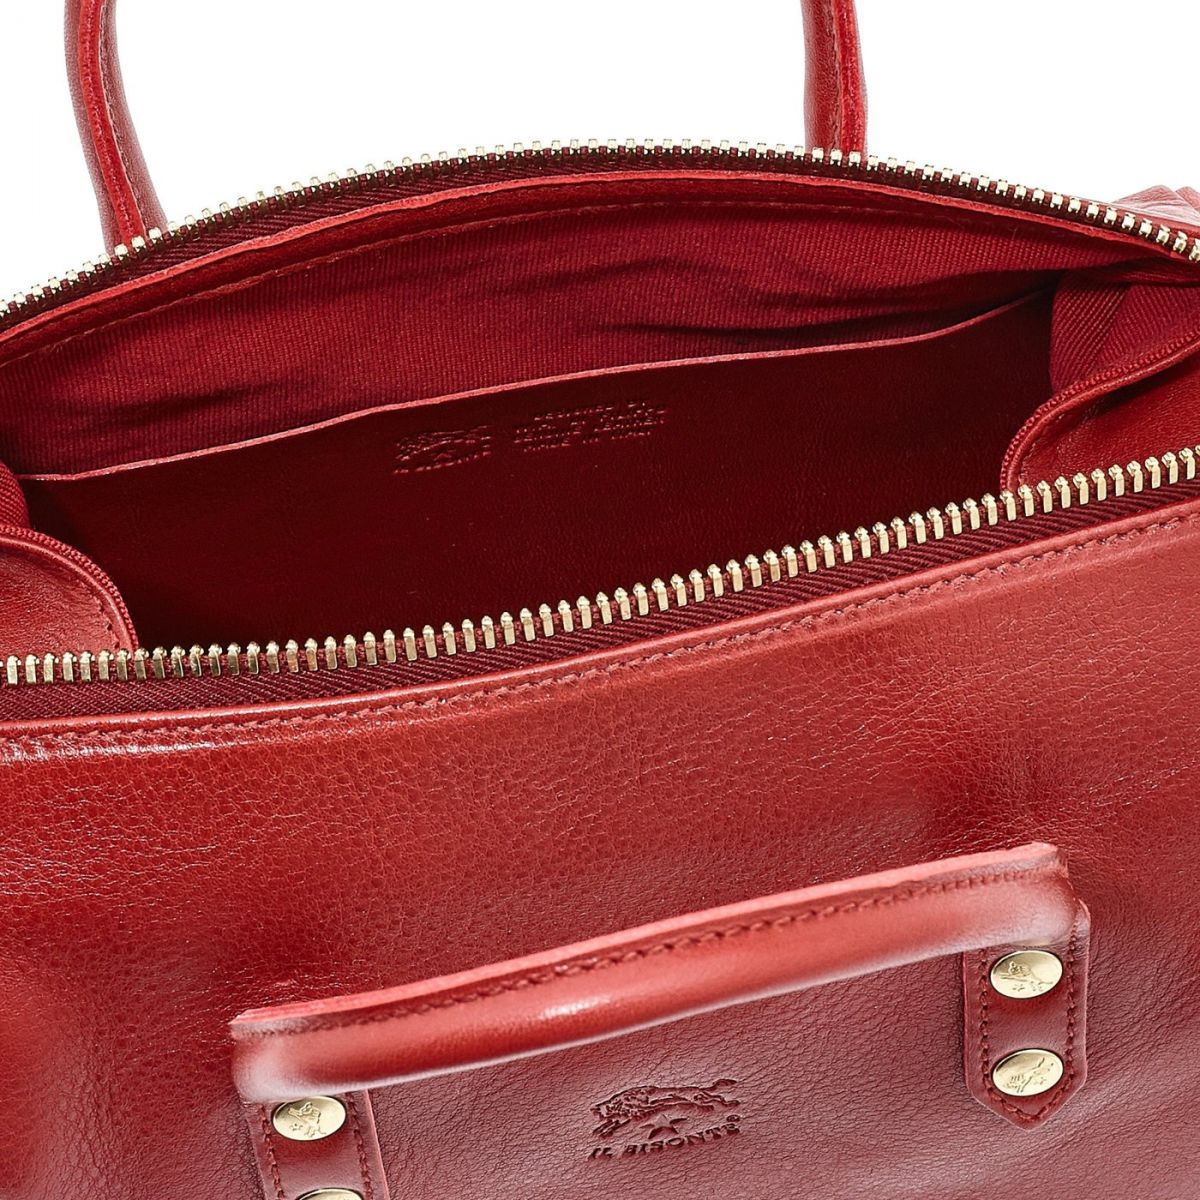 Women's Handbag Pratolino in Cowhide Double Leather BTH049 color Red | Details